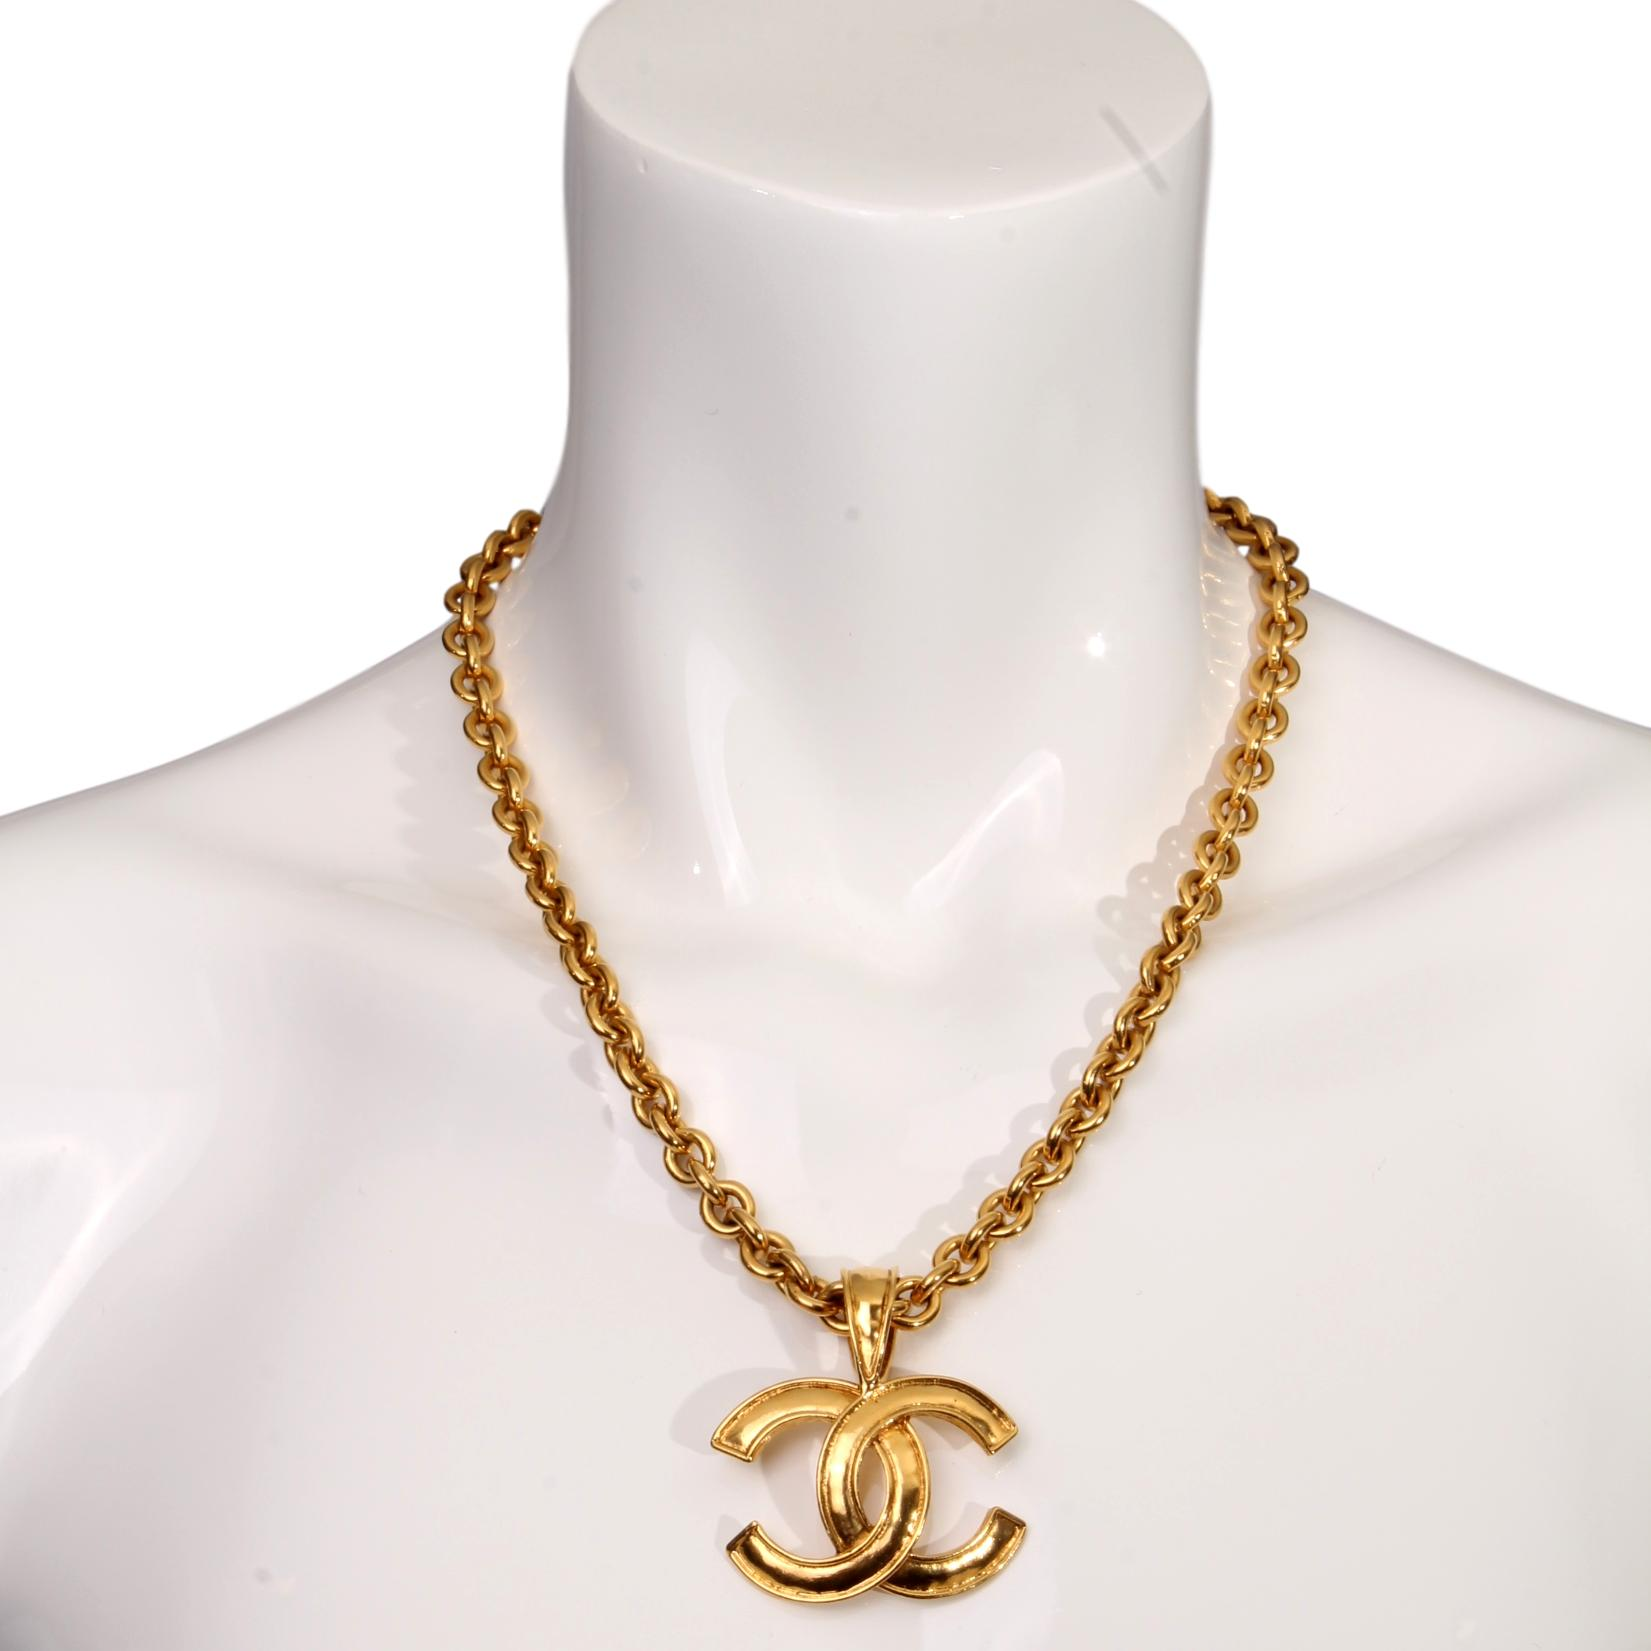 hk fullxfull listing necklace yellow en gold il spiga pendant zoom chain